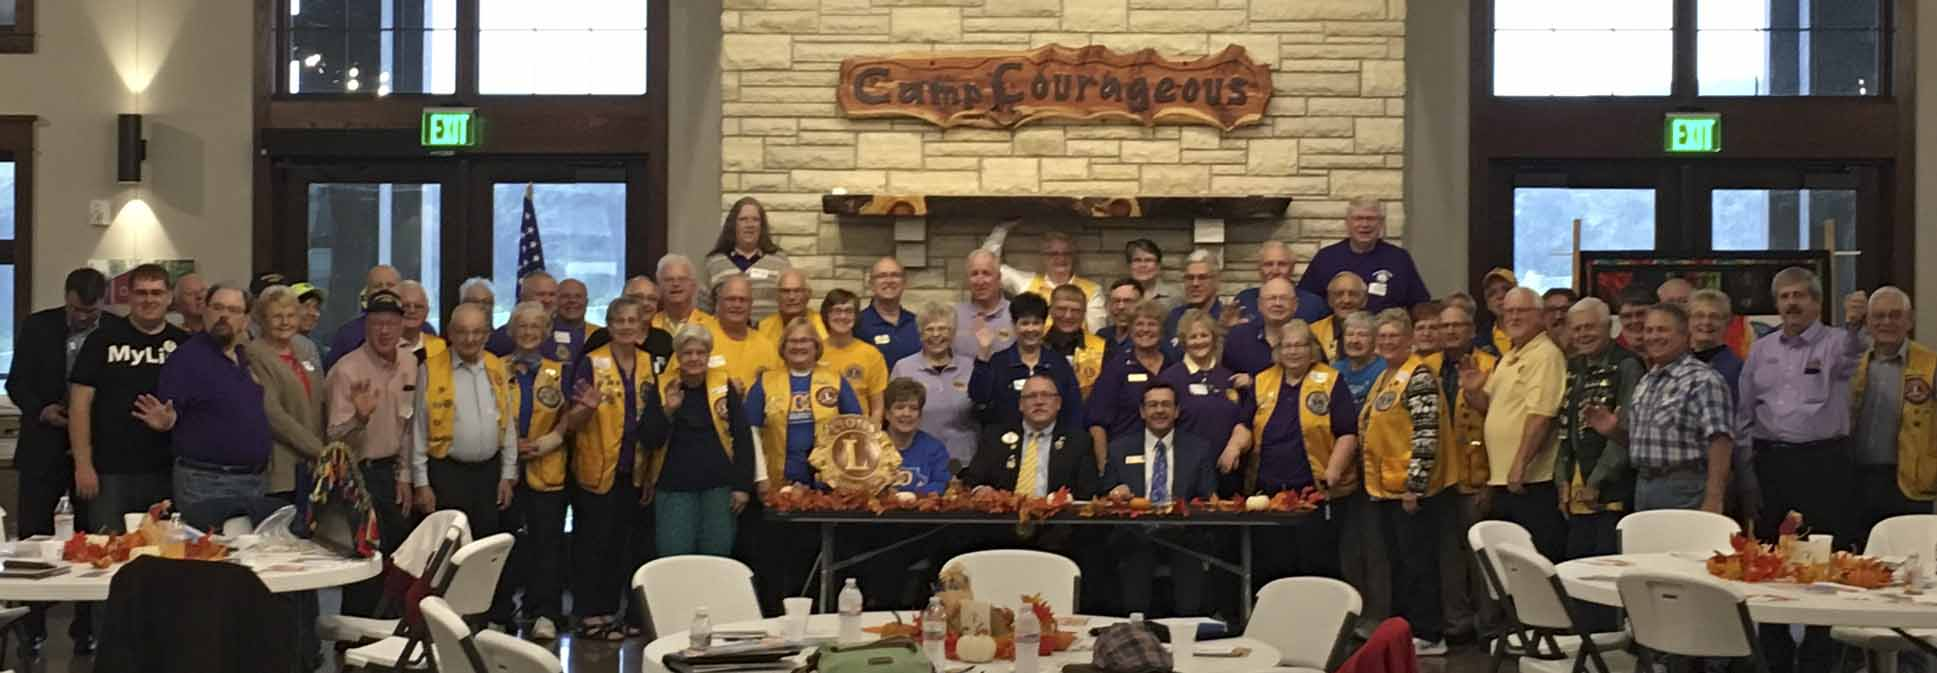 The East Central District of the Iowa Lions Club held their Fall Rally inside the new Durgin Pavilion at Camp Courageous on Oct. 14. At the event, the Lions packaged over 850 pasta meals and 300 eyeglass cases filled with personal hygiene items. (Photo submitted)